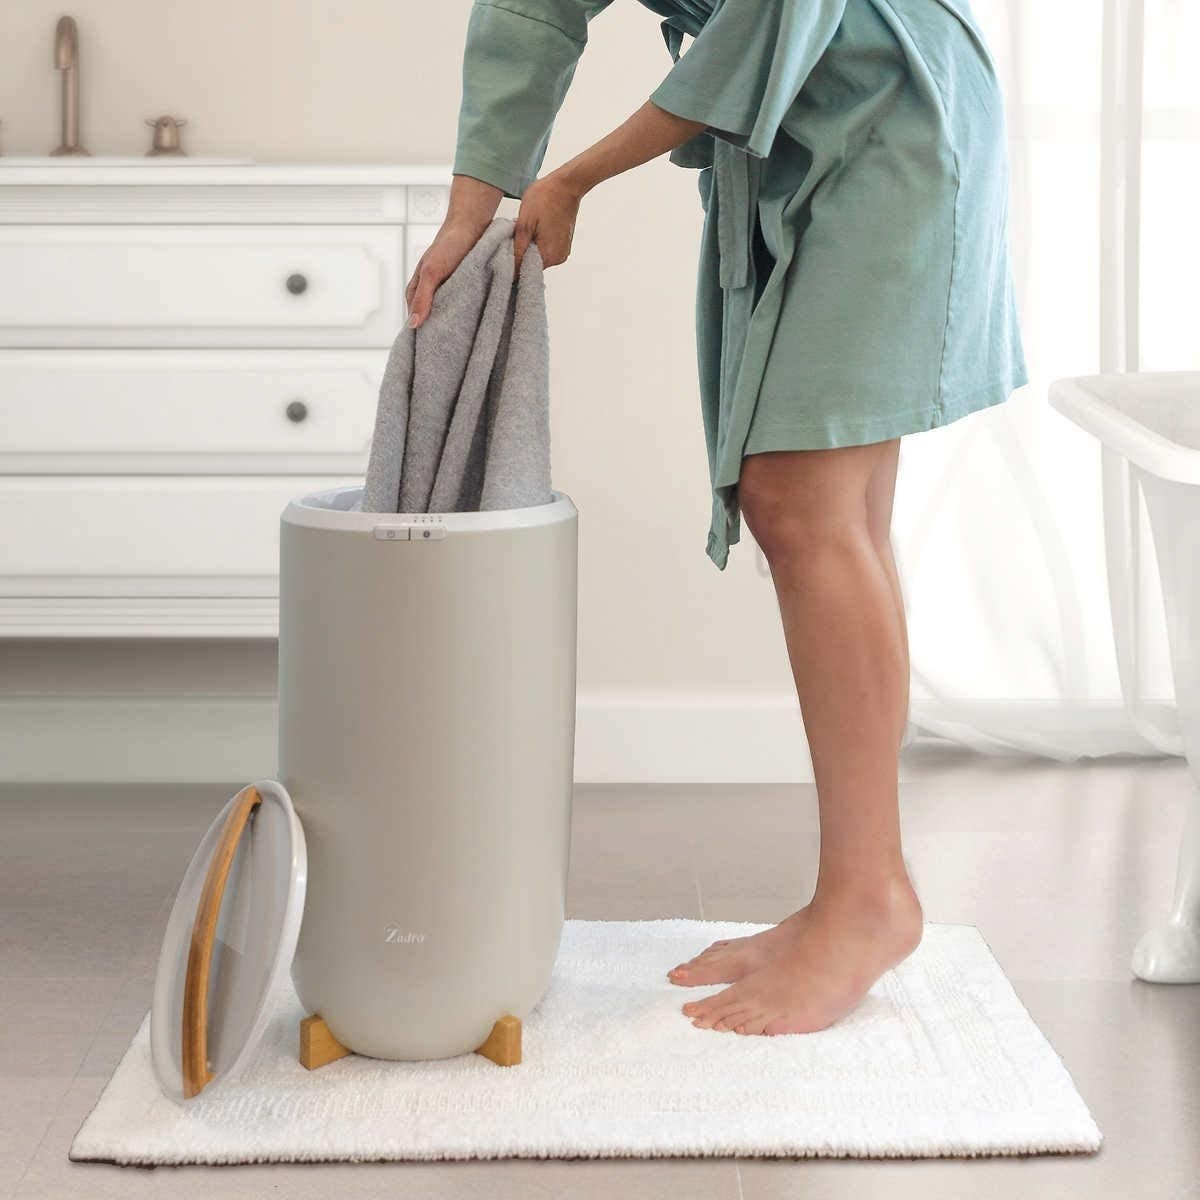 The circular-shaped bin in grey with a lid and wood handle